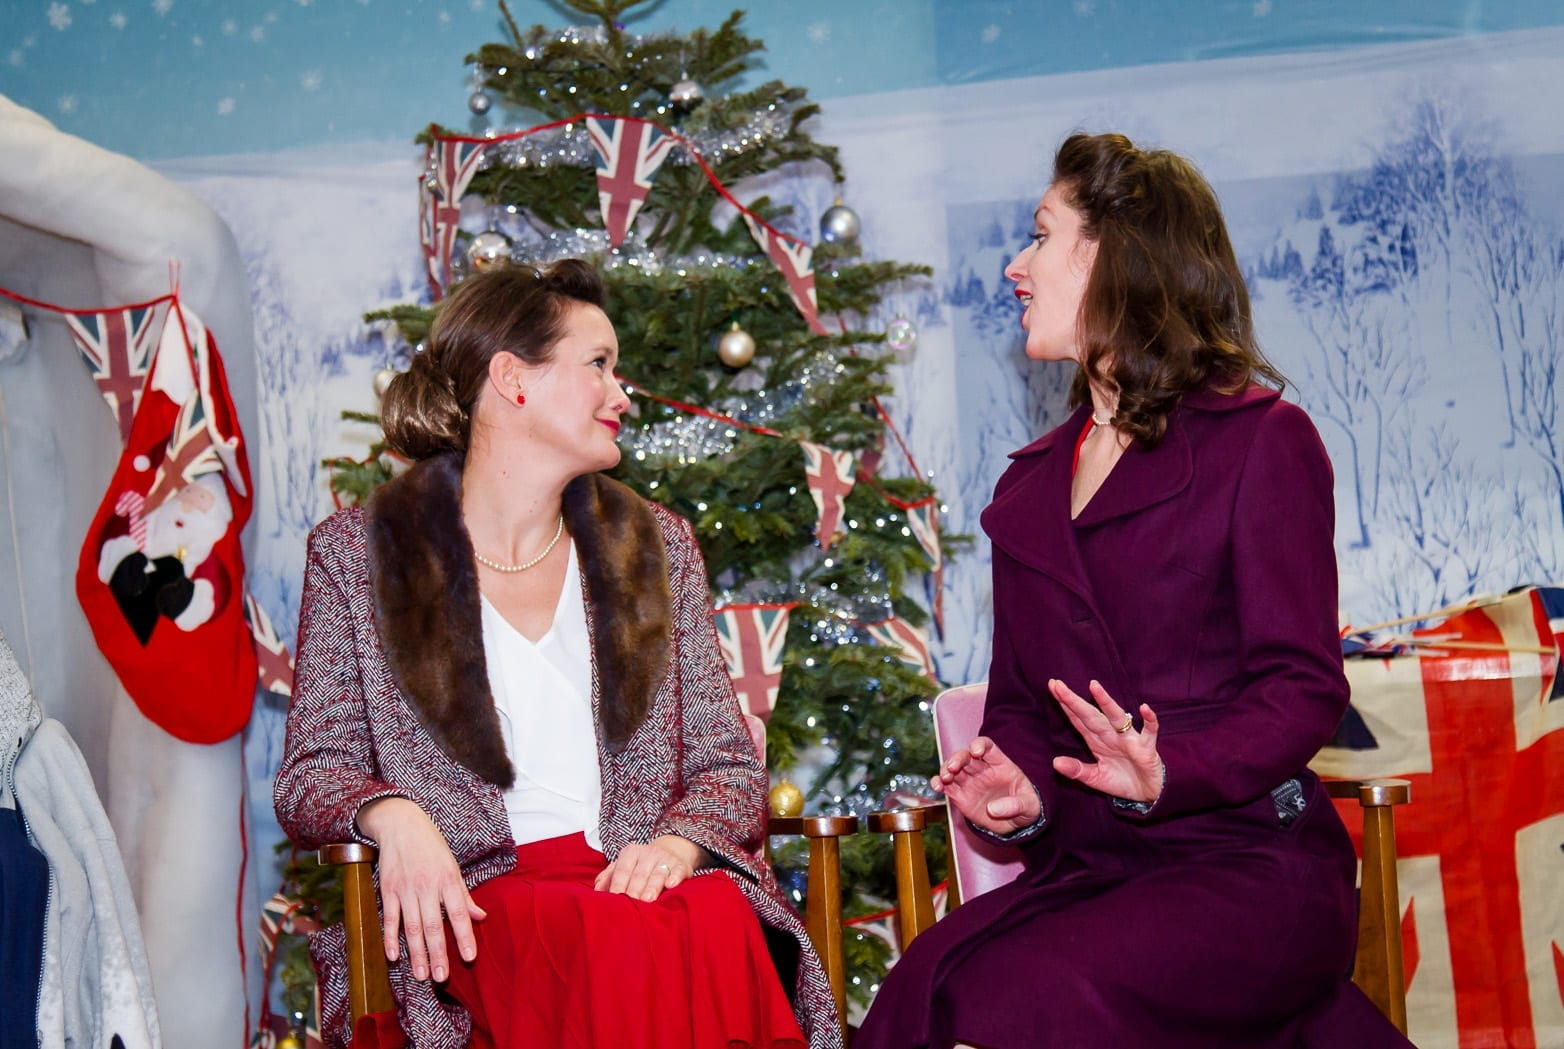 Two women sat in front of a Christmas tree